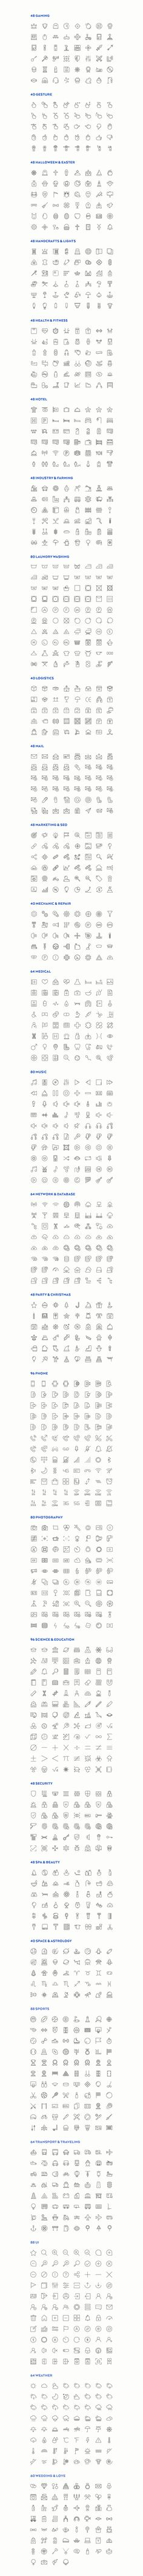 Slimicons - 3300 Line Vector Icons by Dreamstale on @creativemarket